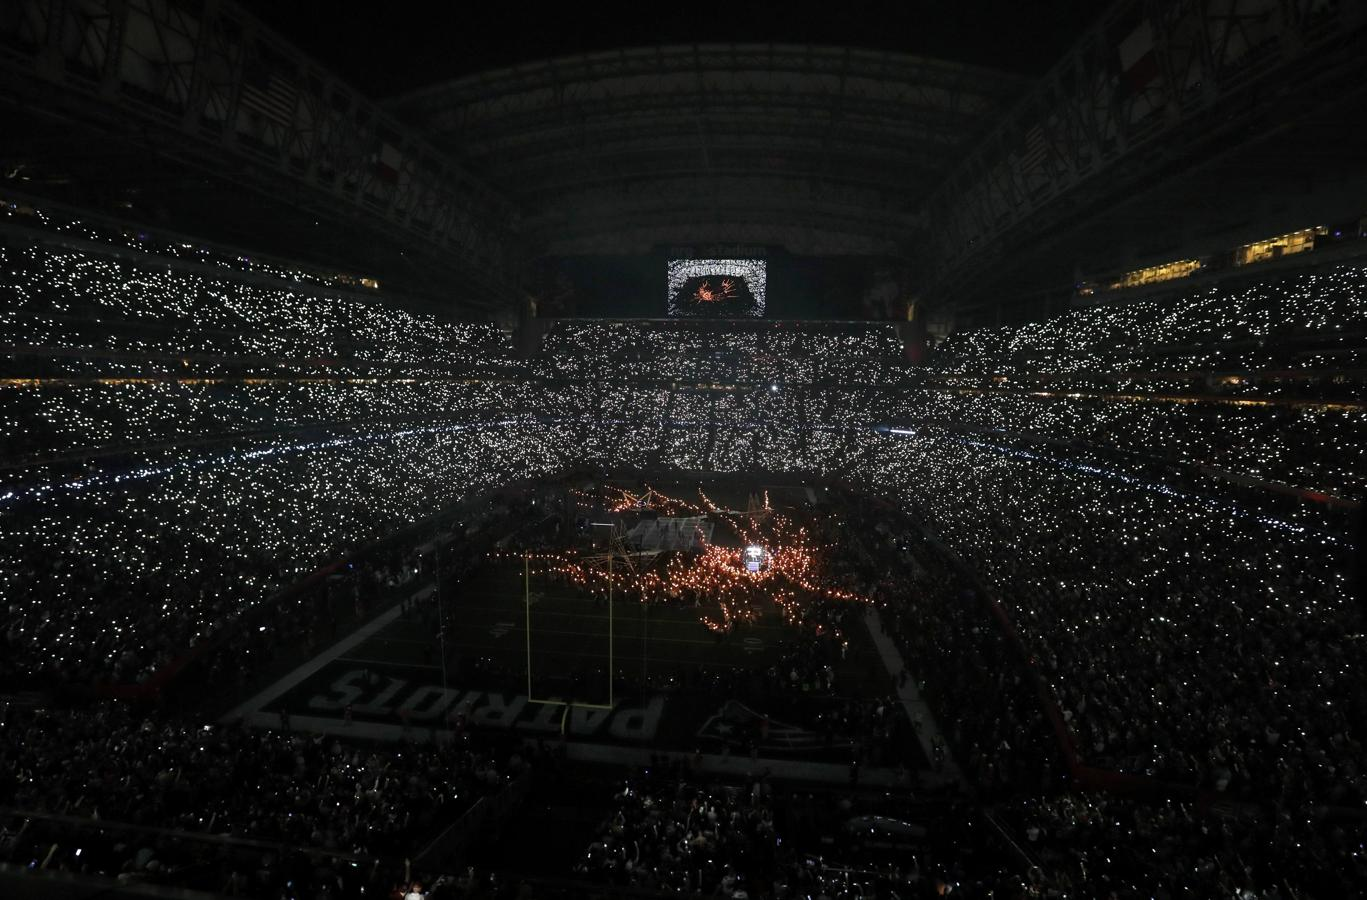 El estadio donde se disputó la final de la Super Bowl durante la actuación de Lady Gaga